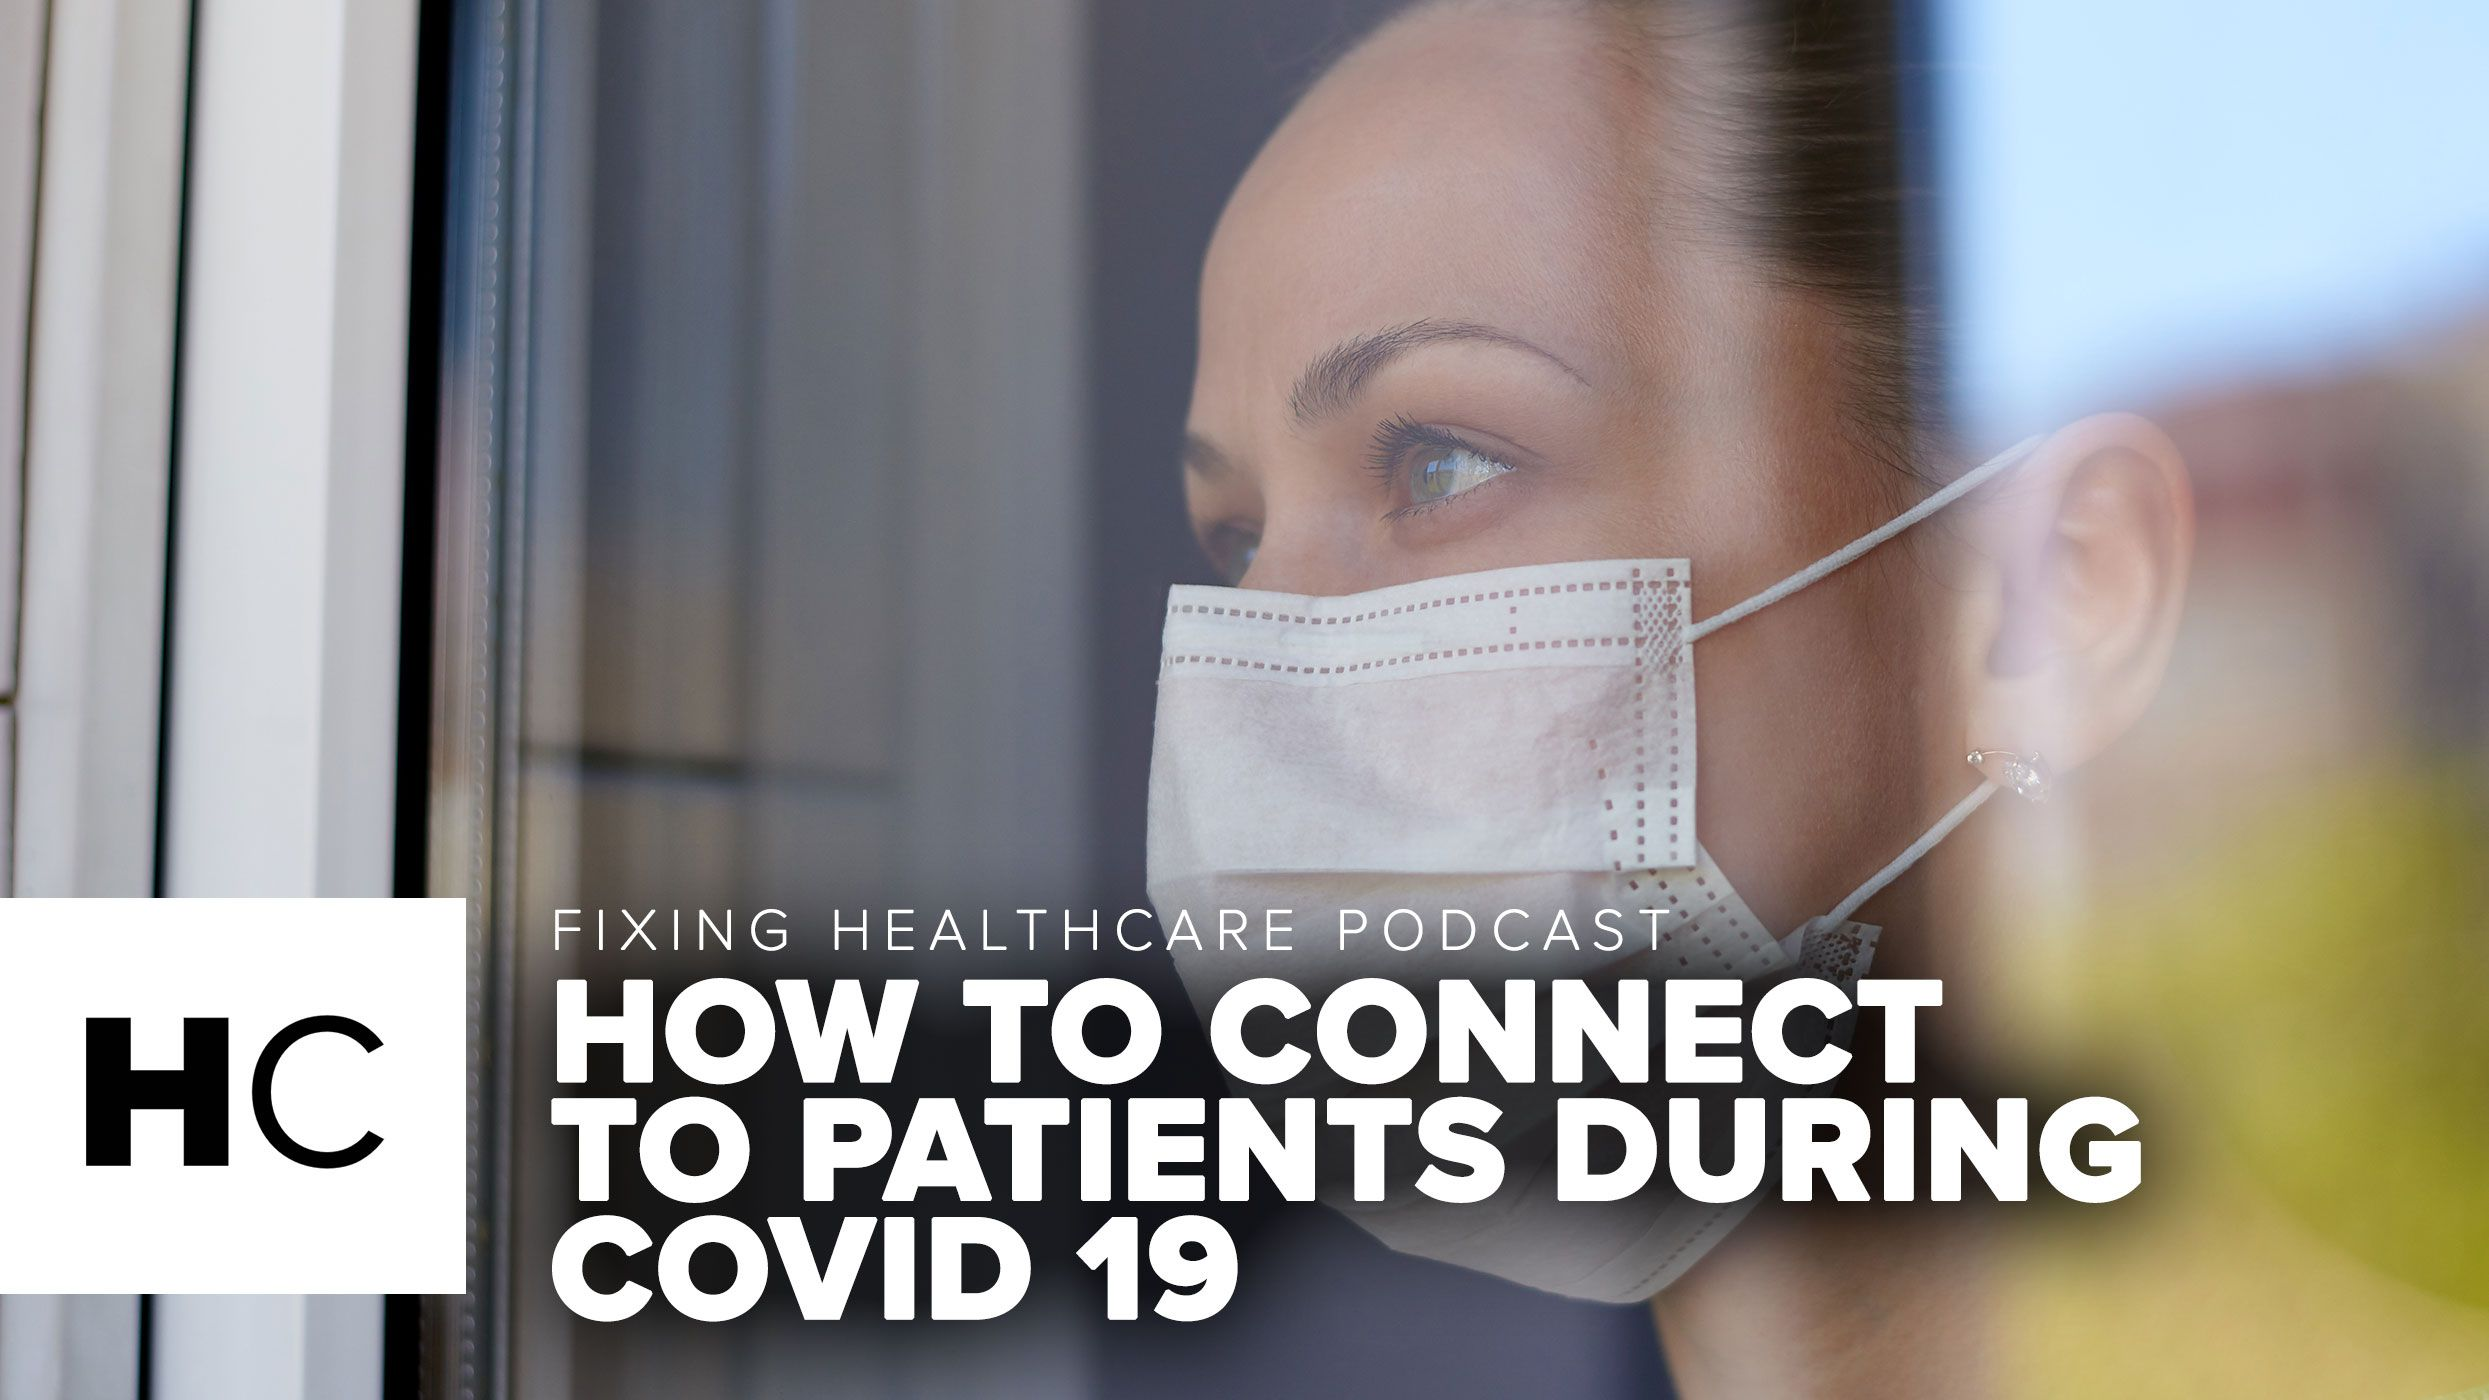 HOW TO CONNECT TO PATIENTS DURING COVID 19